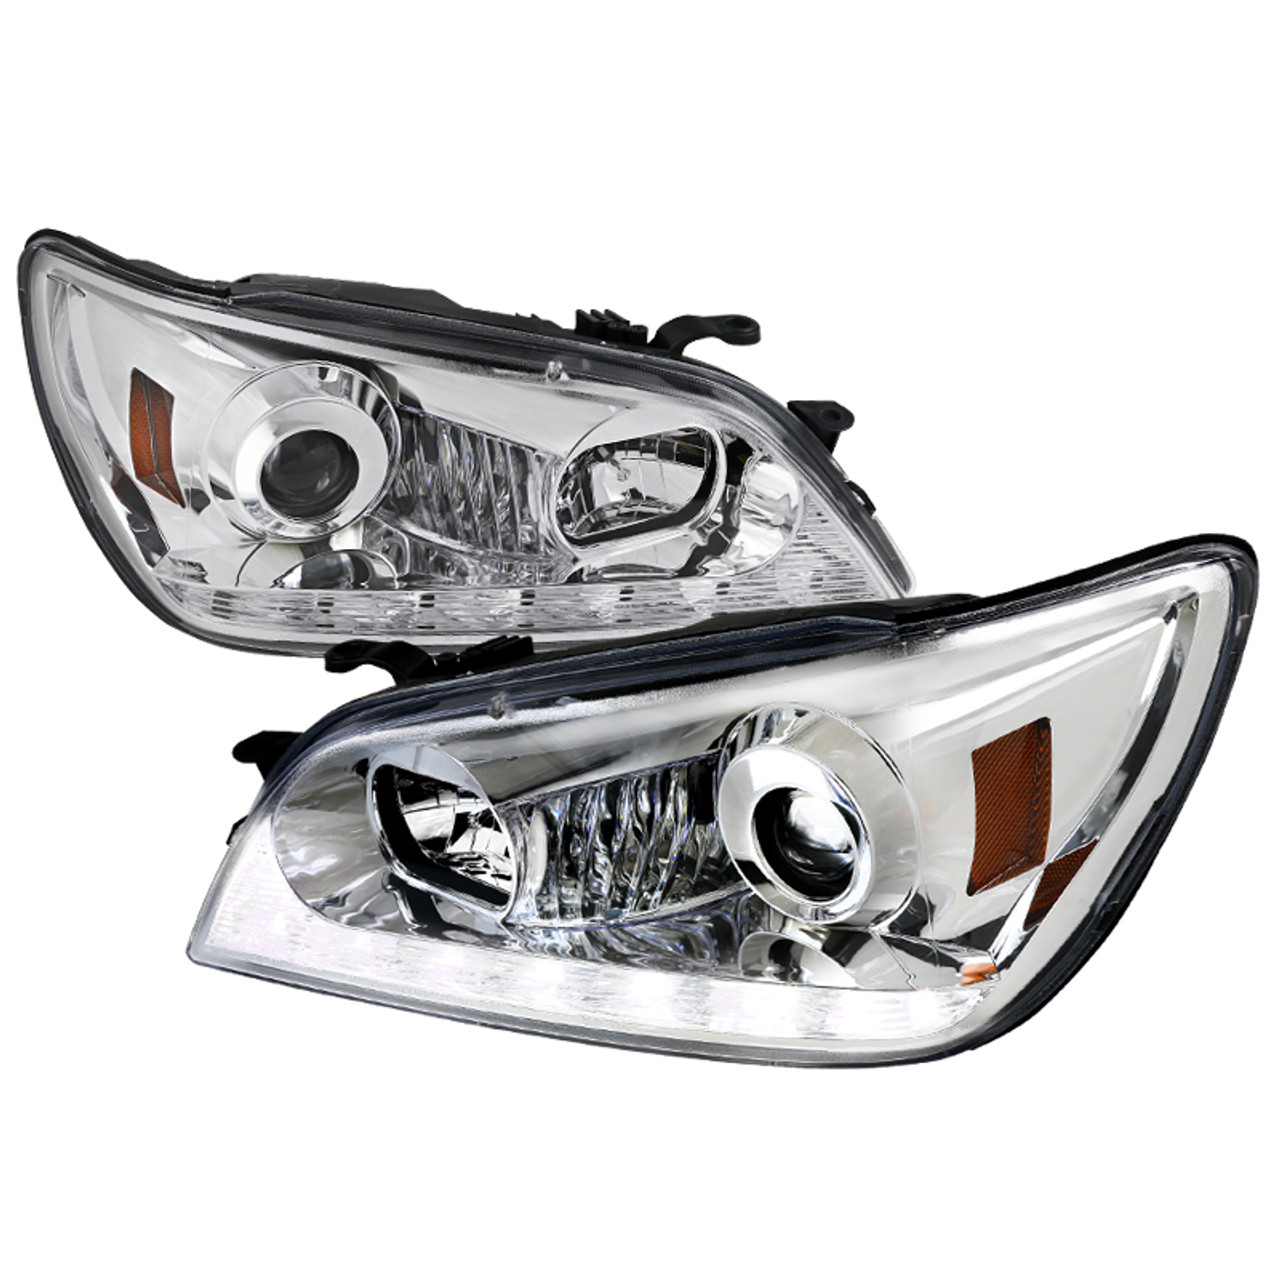 Fits 2001-2005 Lexus IS300 LED Strip Projector Headlights Black Facelift Style